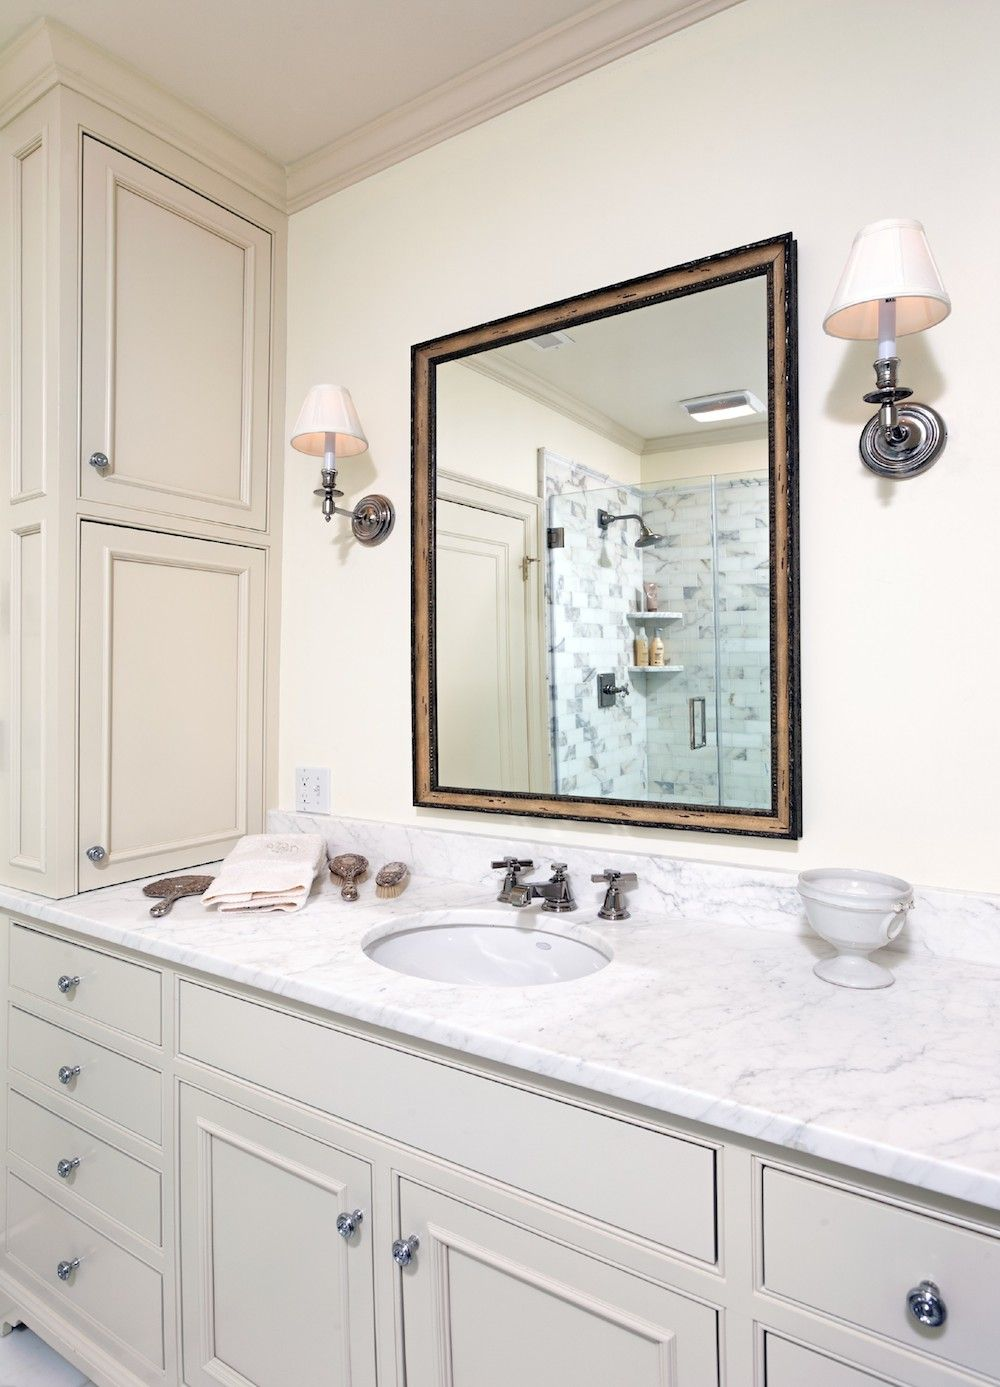 Bathroom Remodeling Jobs 3 home remodeling jobs that cost less than a grand | bethesda, md